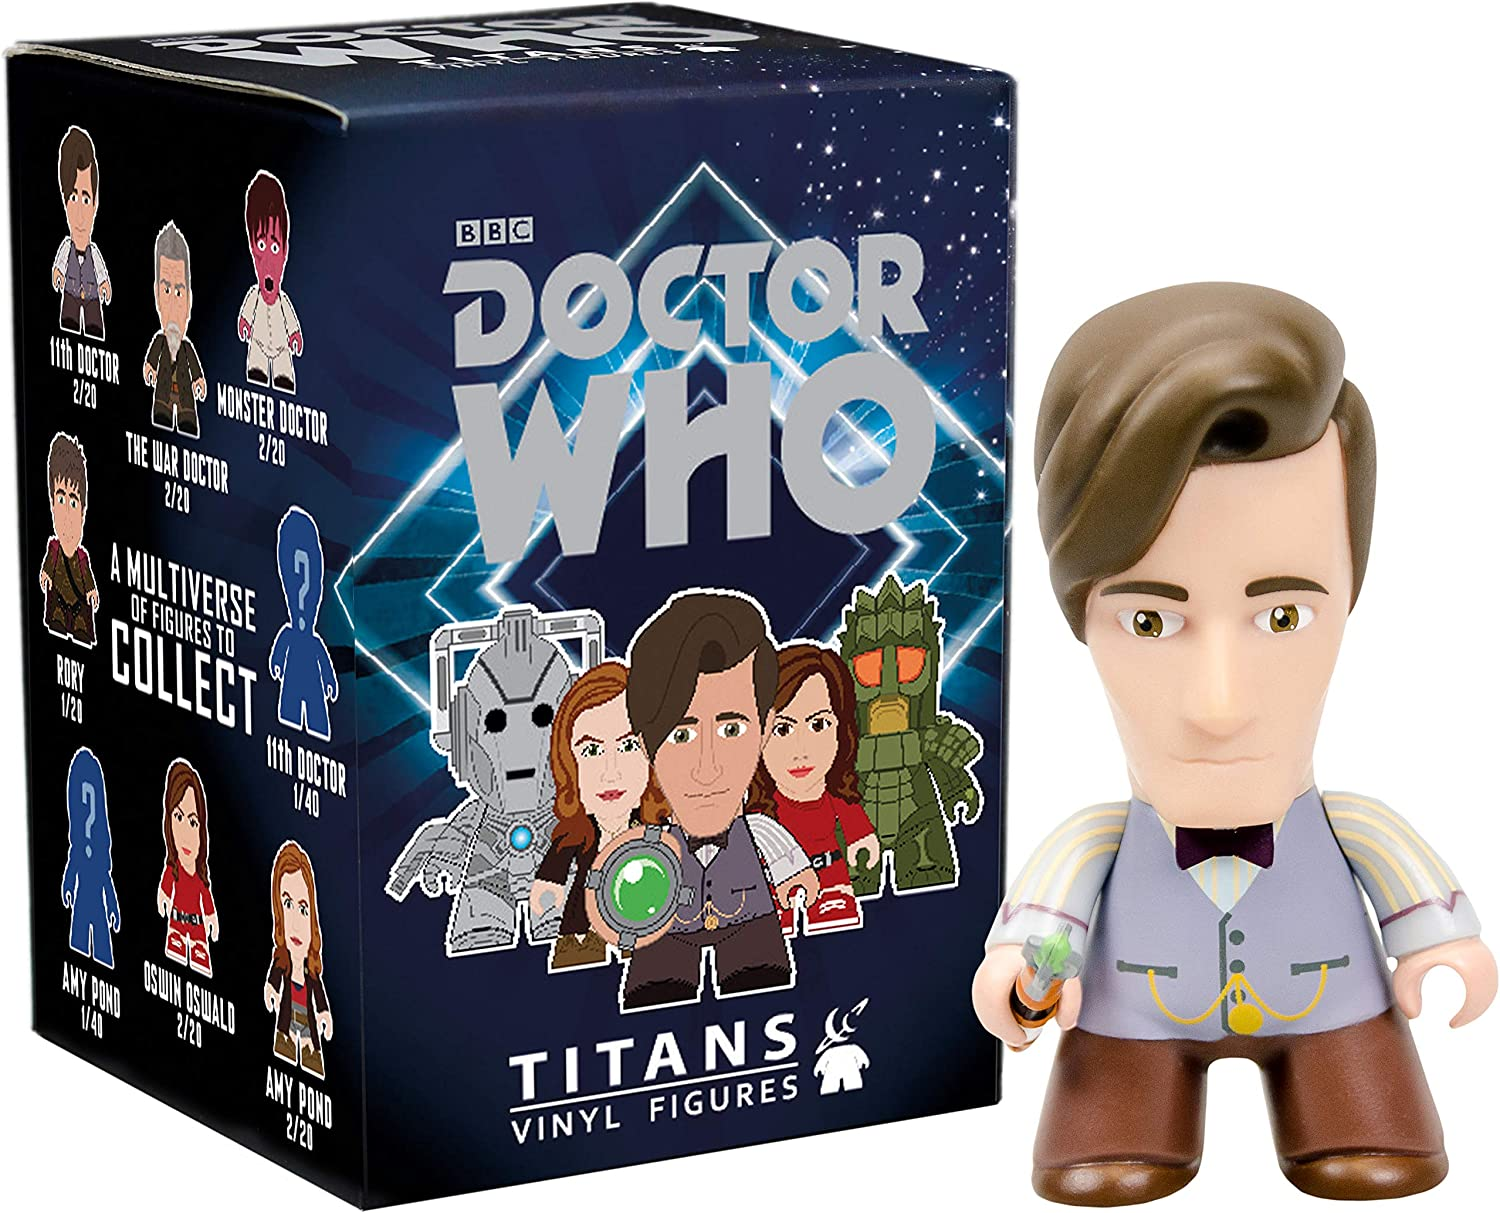 Titans Doctor who 11th doctor Collection 3/'/' Vinyl action Figures toys